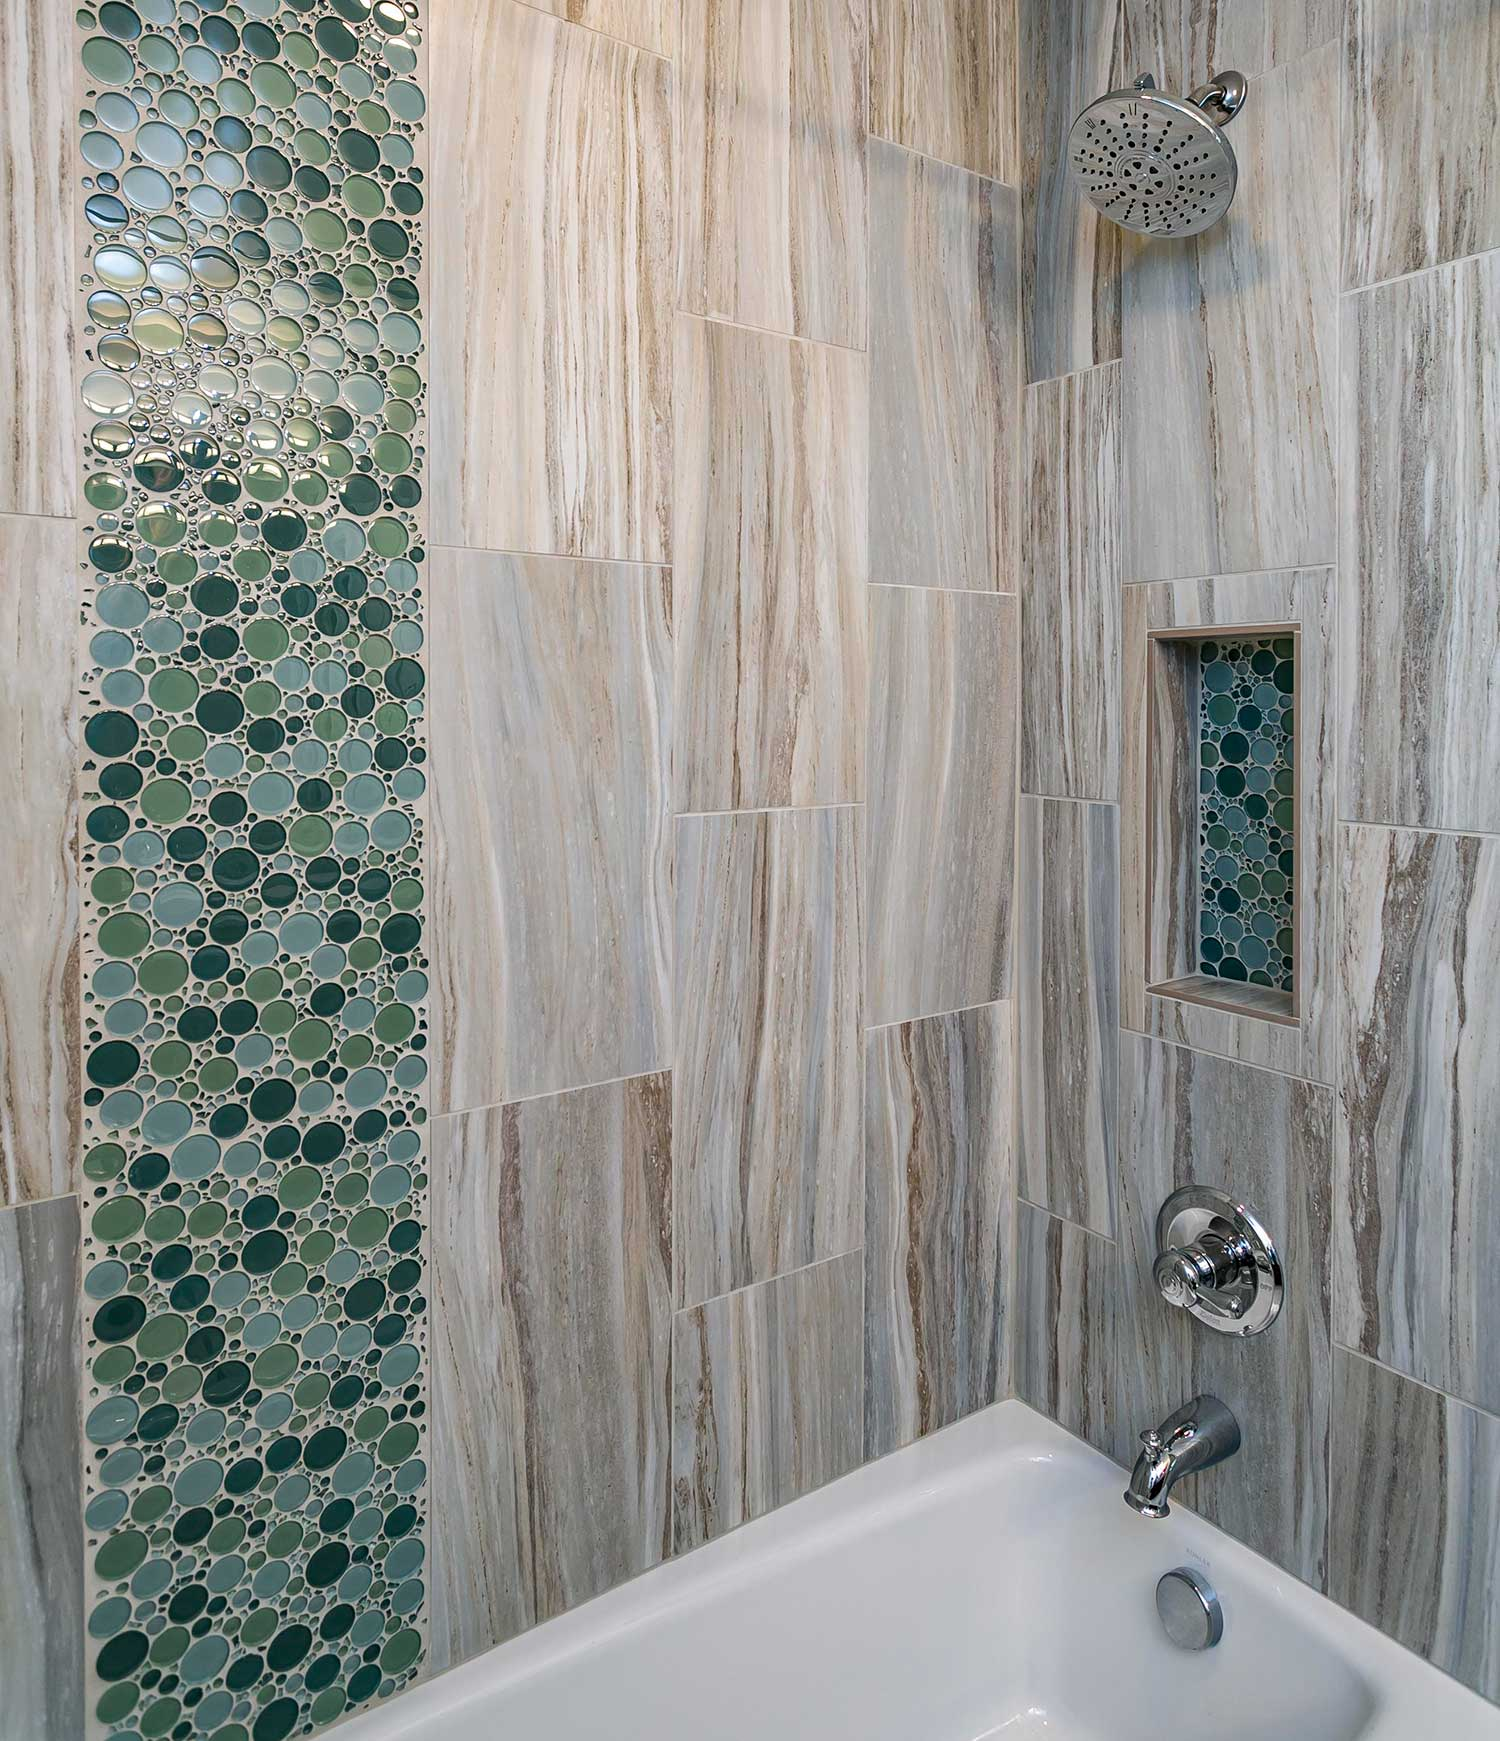 Shower and tub combination with teal tile that give the appearance of bubbles